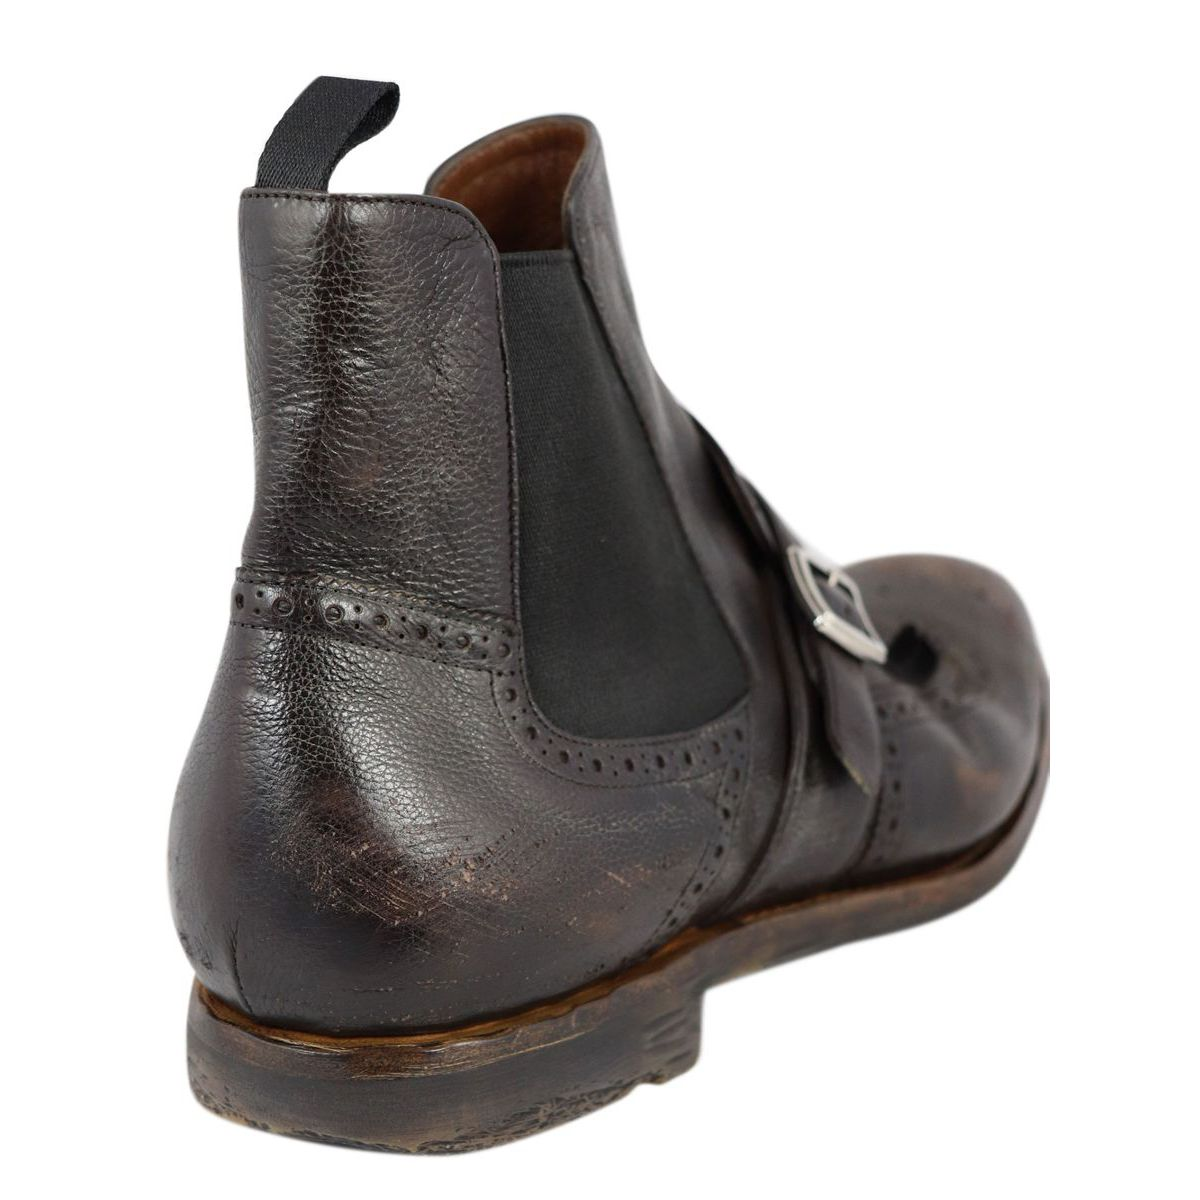 SHANGHAI 6 boot in glacé calf leather Brown Church's